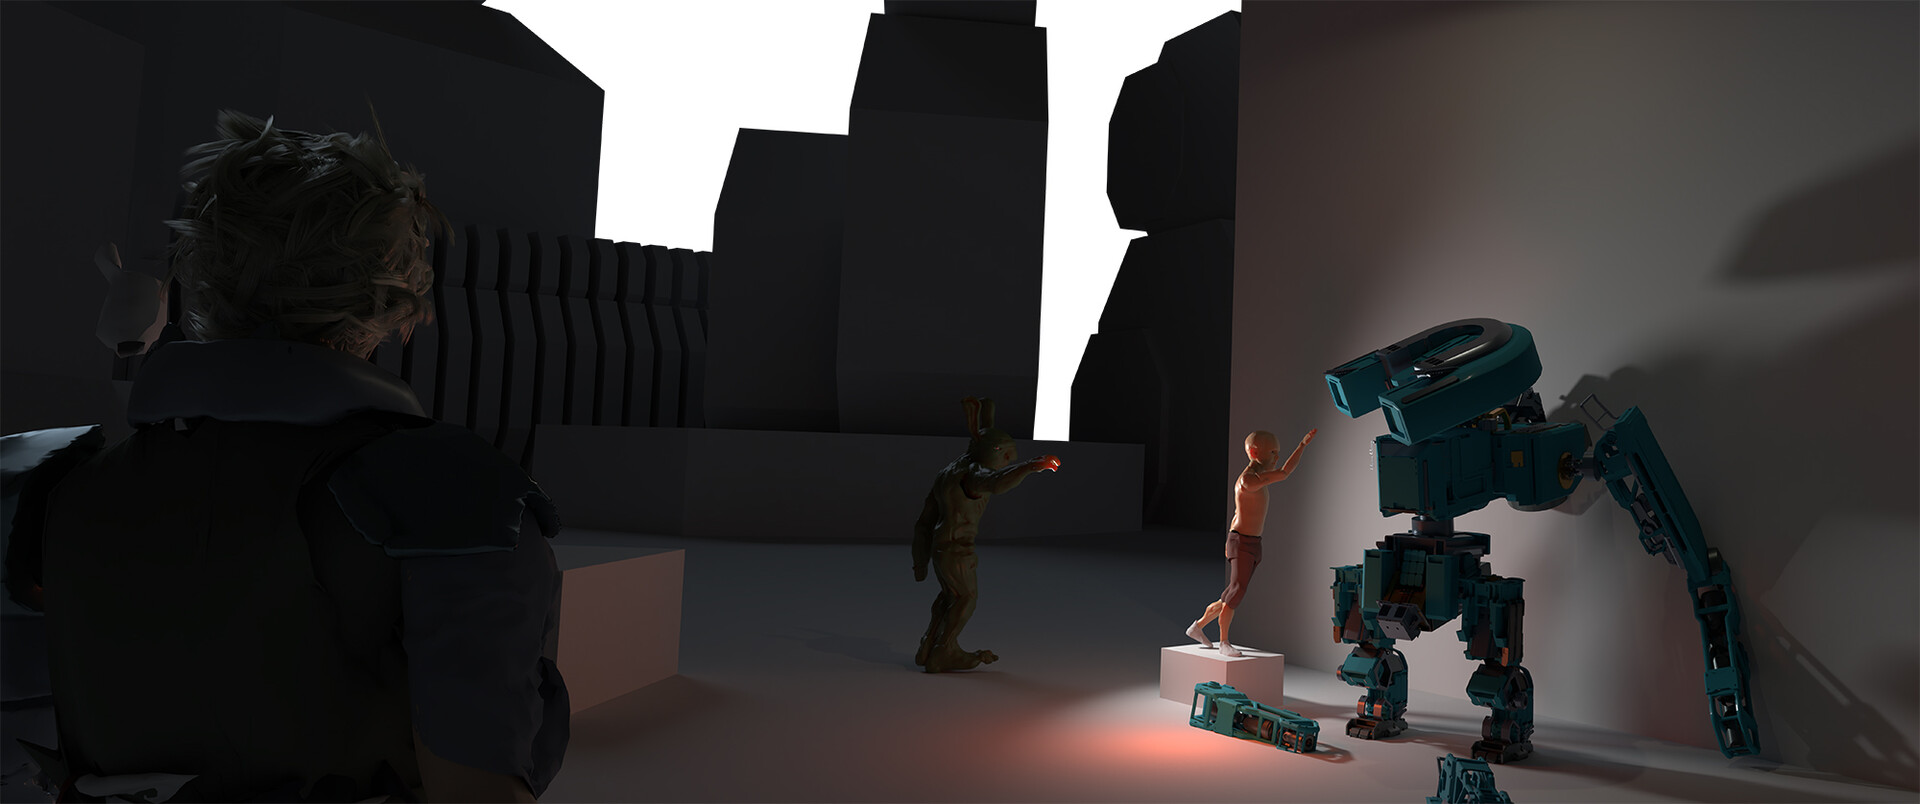 The original blockout/composition. Re-arranged the characters to place more emphasis on the environment.